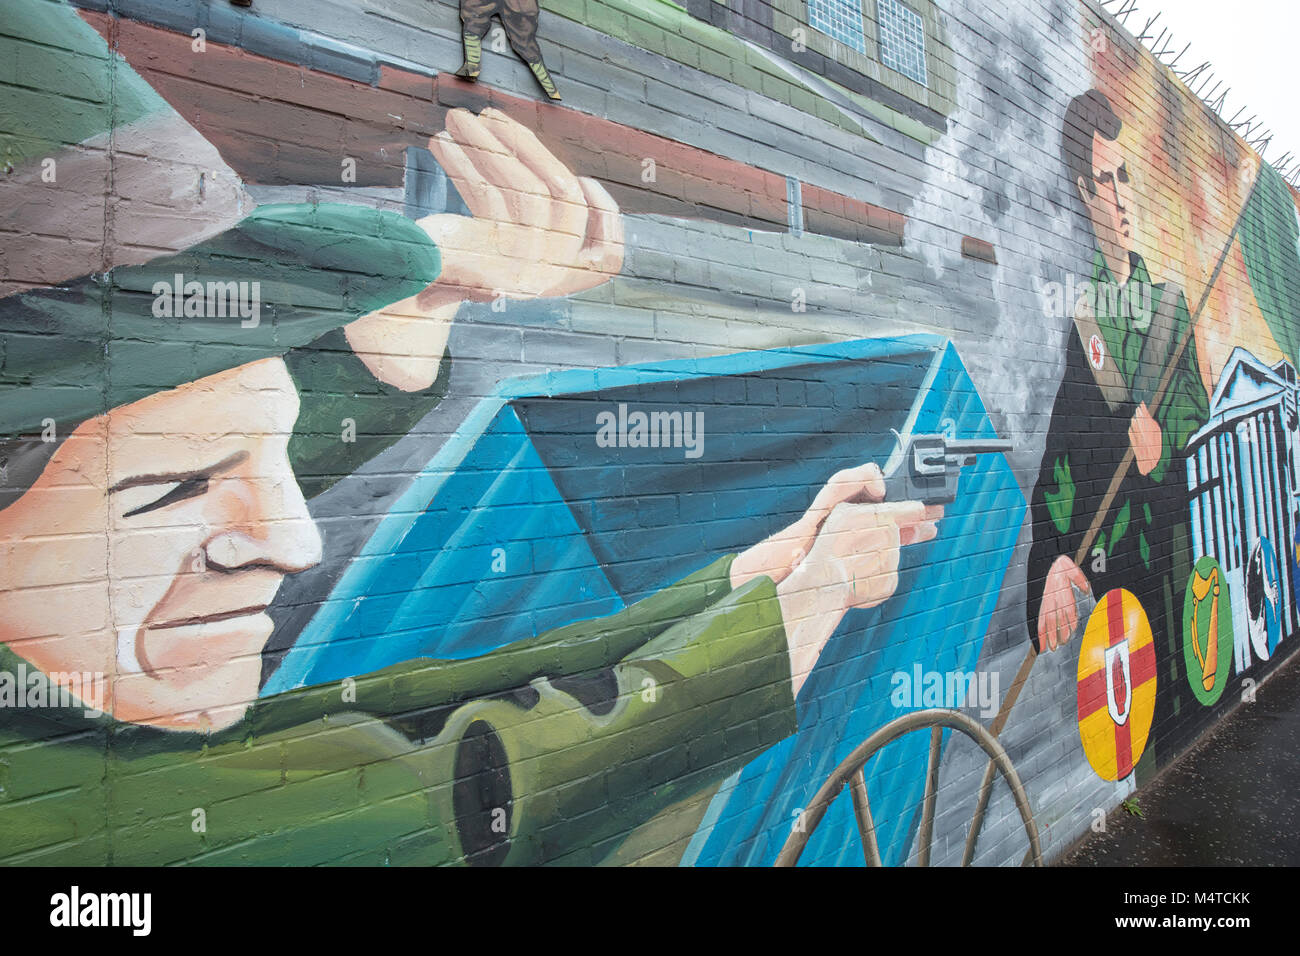 Republican mural commemorating The Troubles, Falls Road, Belfast, Country Antrim, Northern Ireland. - Stock Image